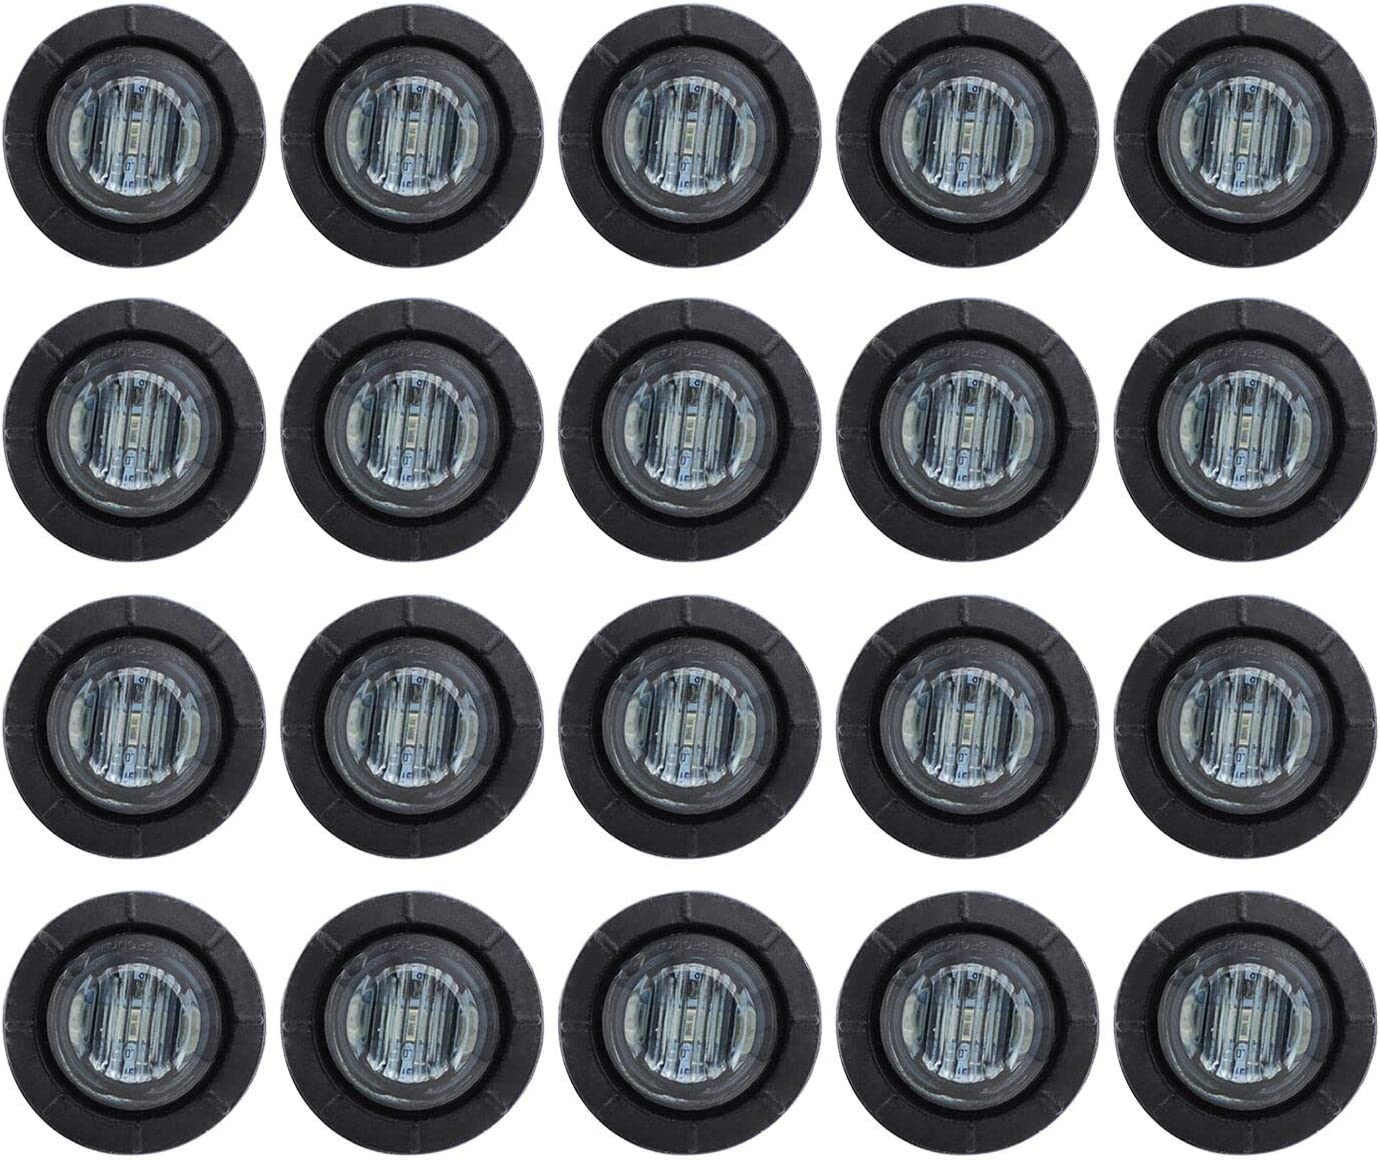 Max 81% OFF Pack of 20 TMH 3 4 Inch Lens Mount RED Challenge the lowest price Clearance LED Smoked